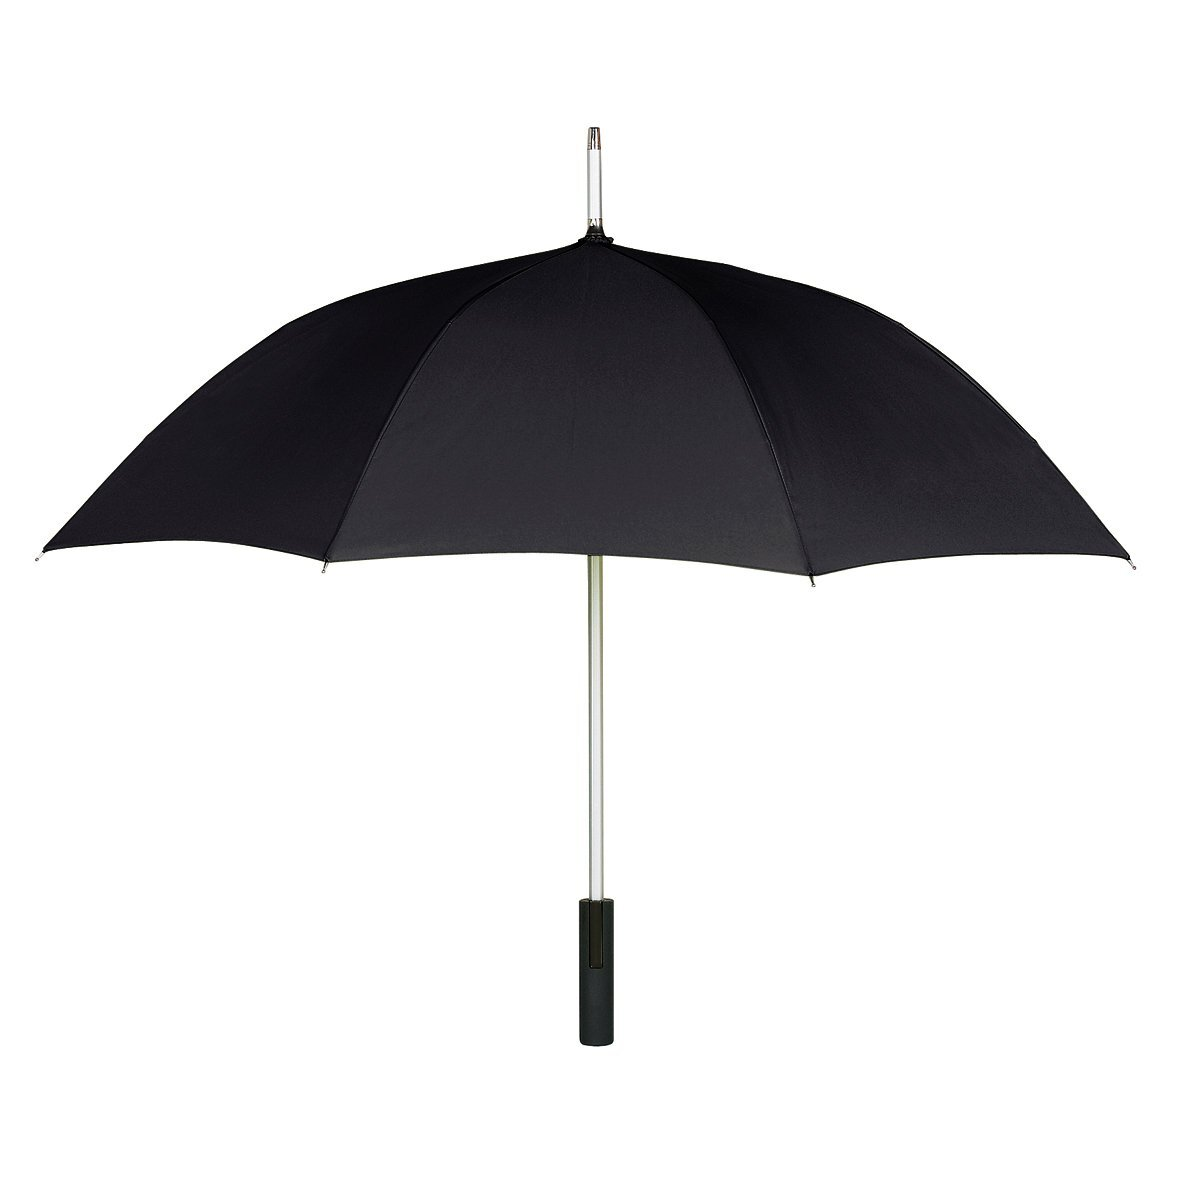 "Spectrum Umbrella, 46"" Arc"